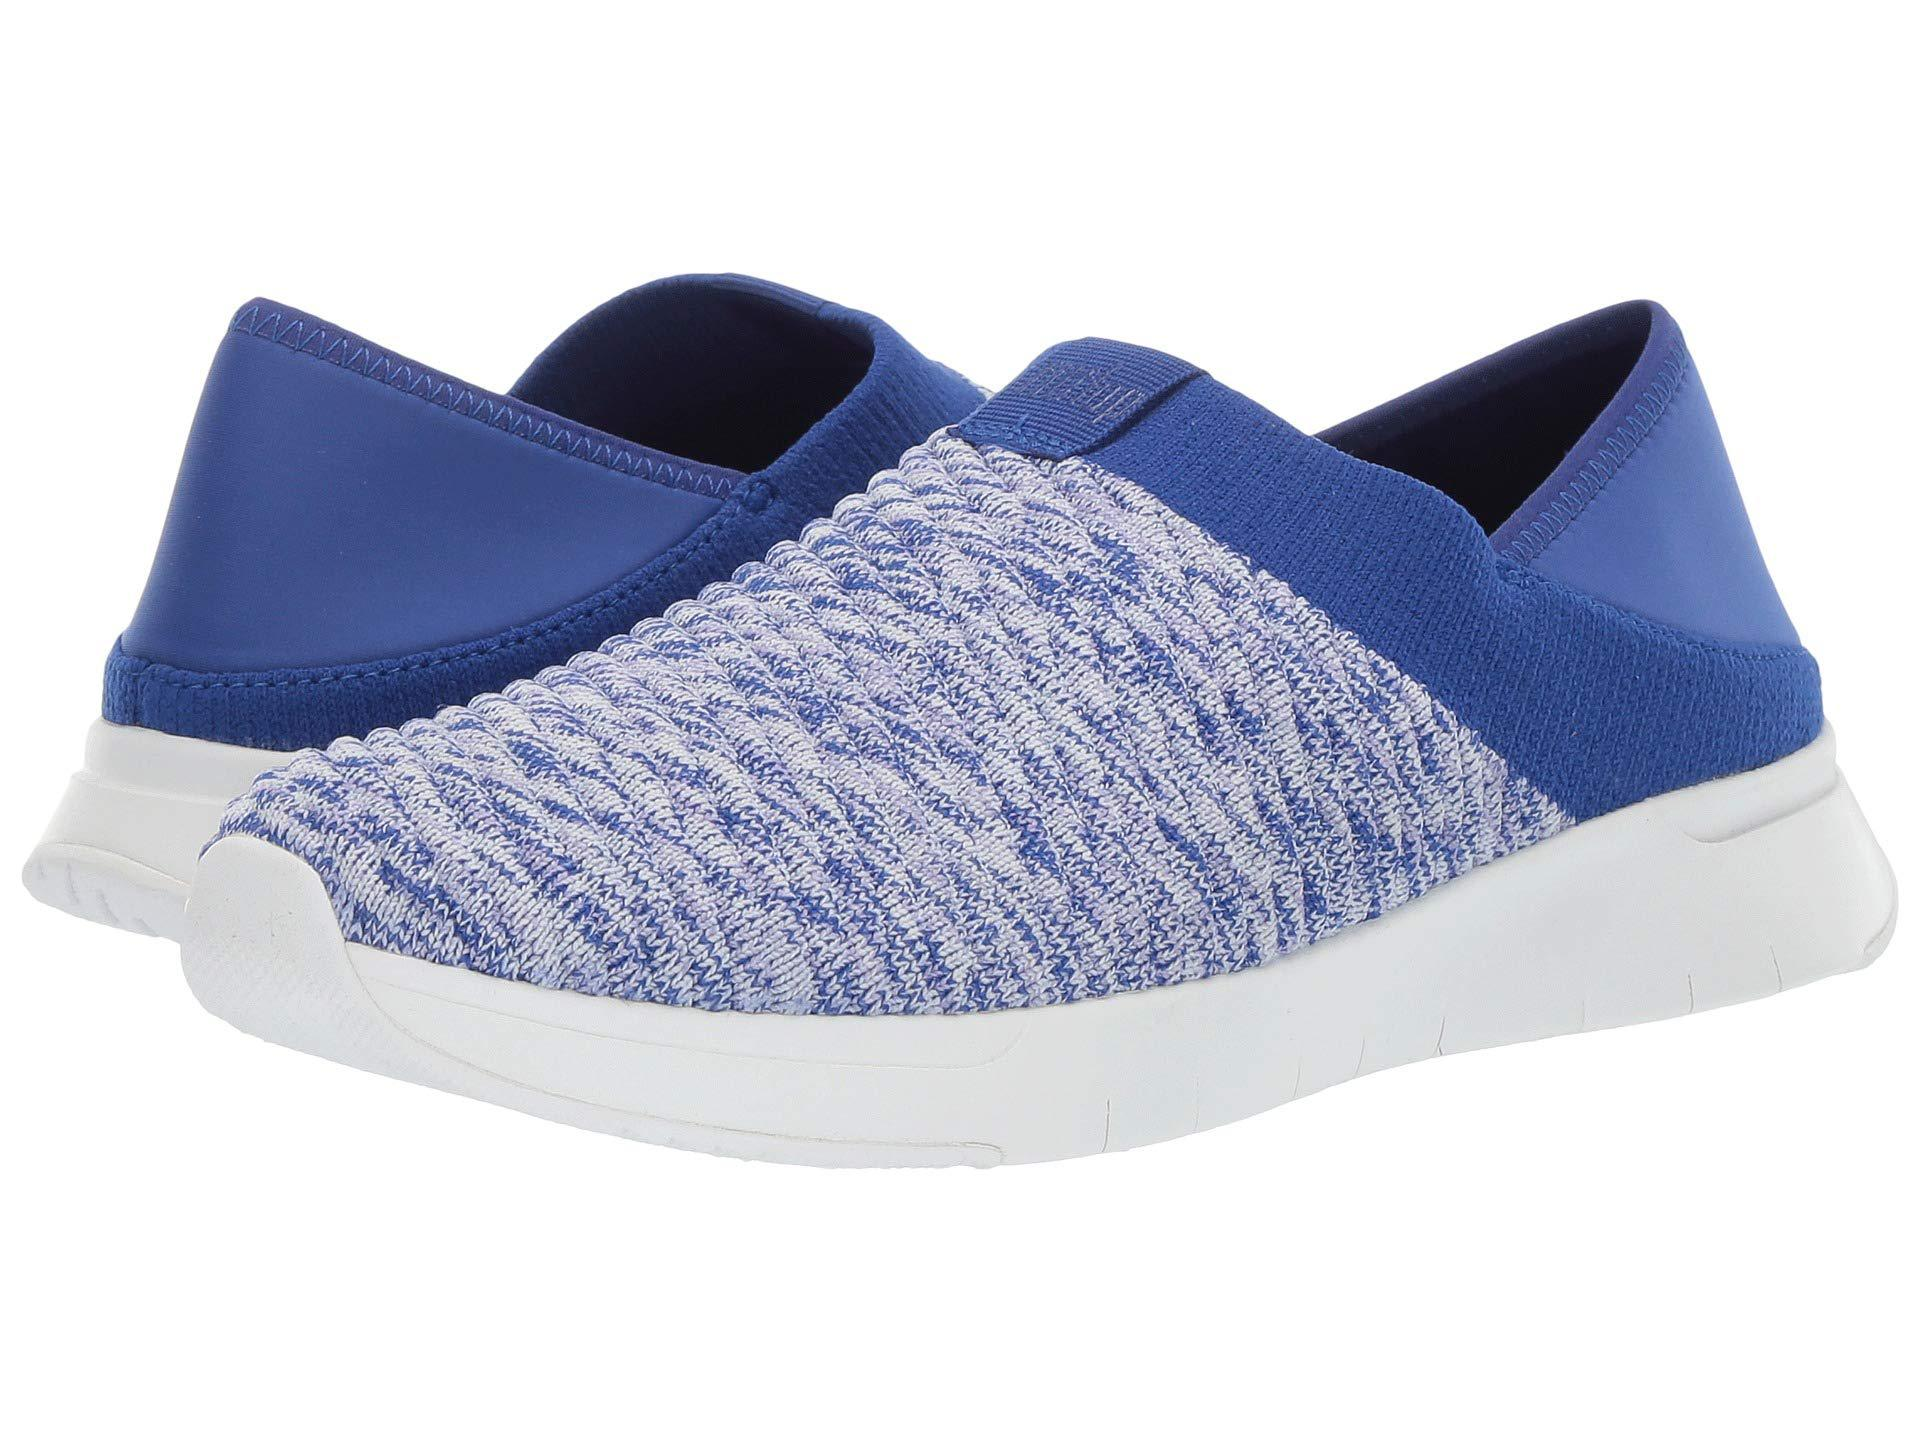 8ed0a75a0d9 Lyst - Fitflop Artknit Sneaker (illusion Blue) Women s Shoes in Blue ...